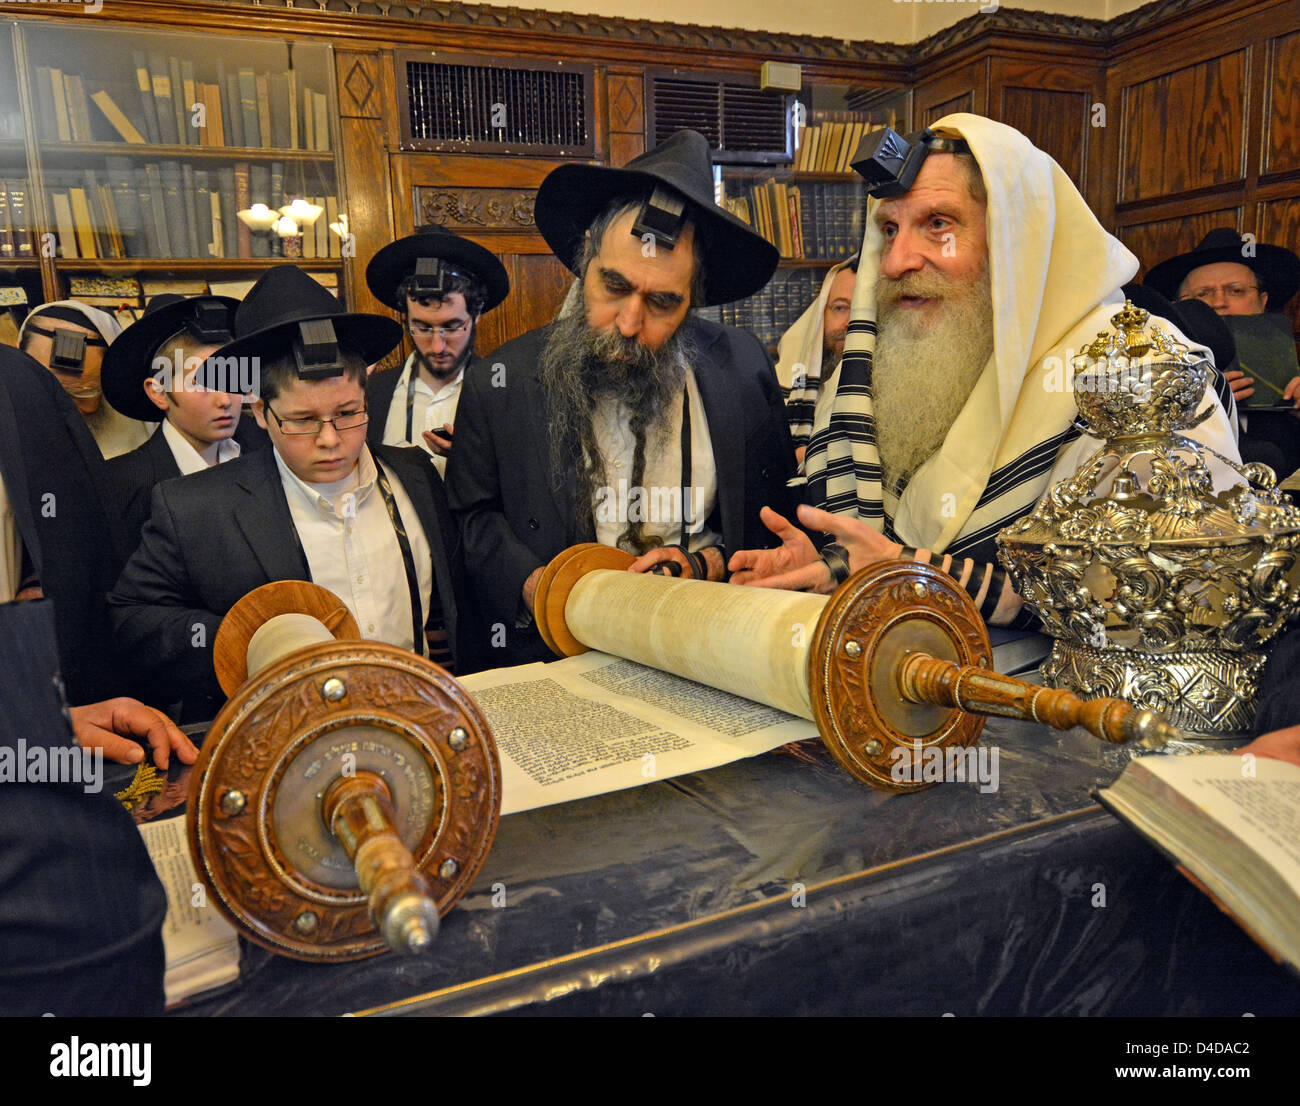 Religious Jews pray in the Rebbe's study at Lubavitch Headquarters in Brooklyn, New York. Bar Mitzvah boy blesses - Stock Image